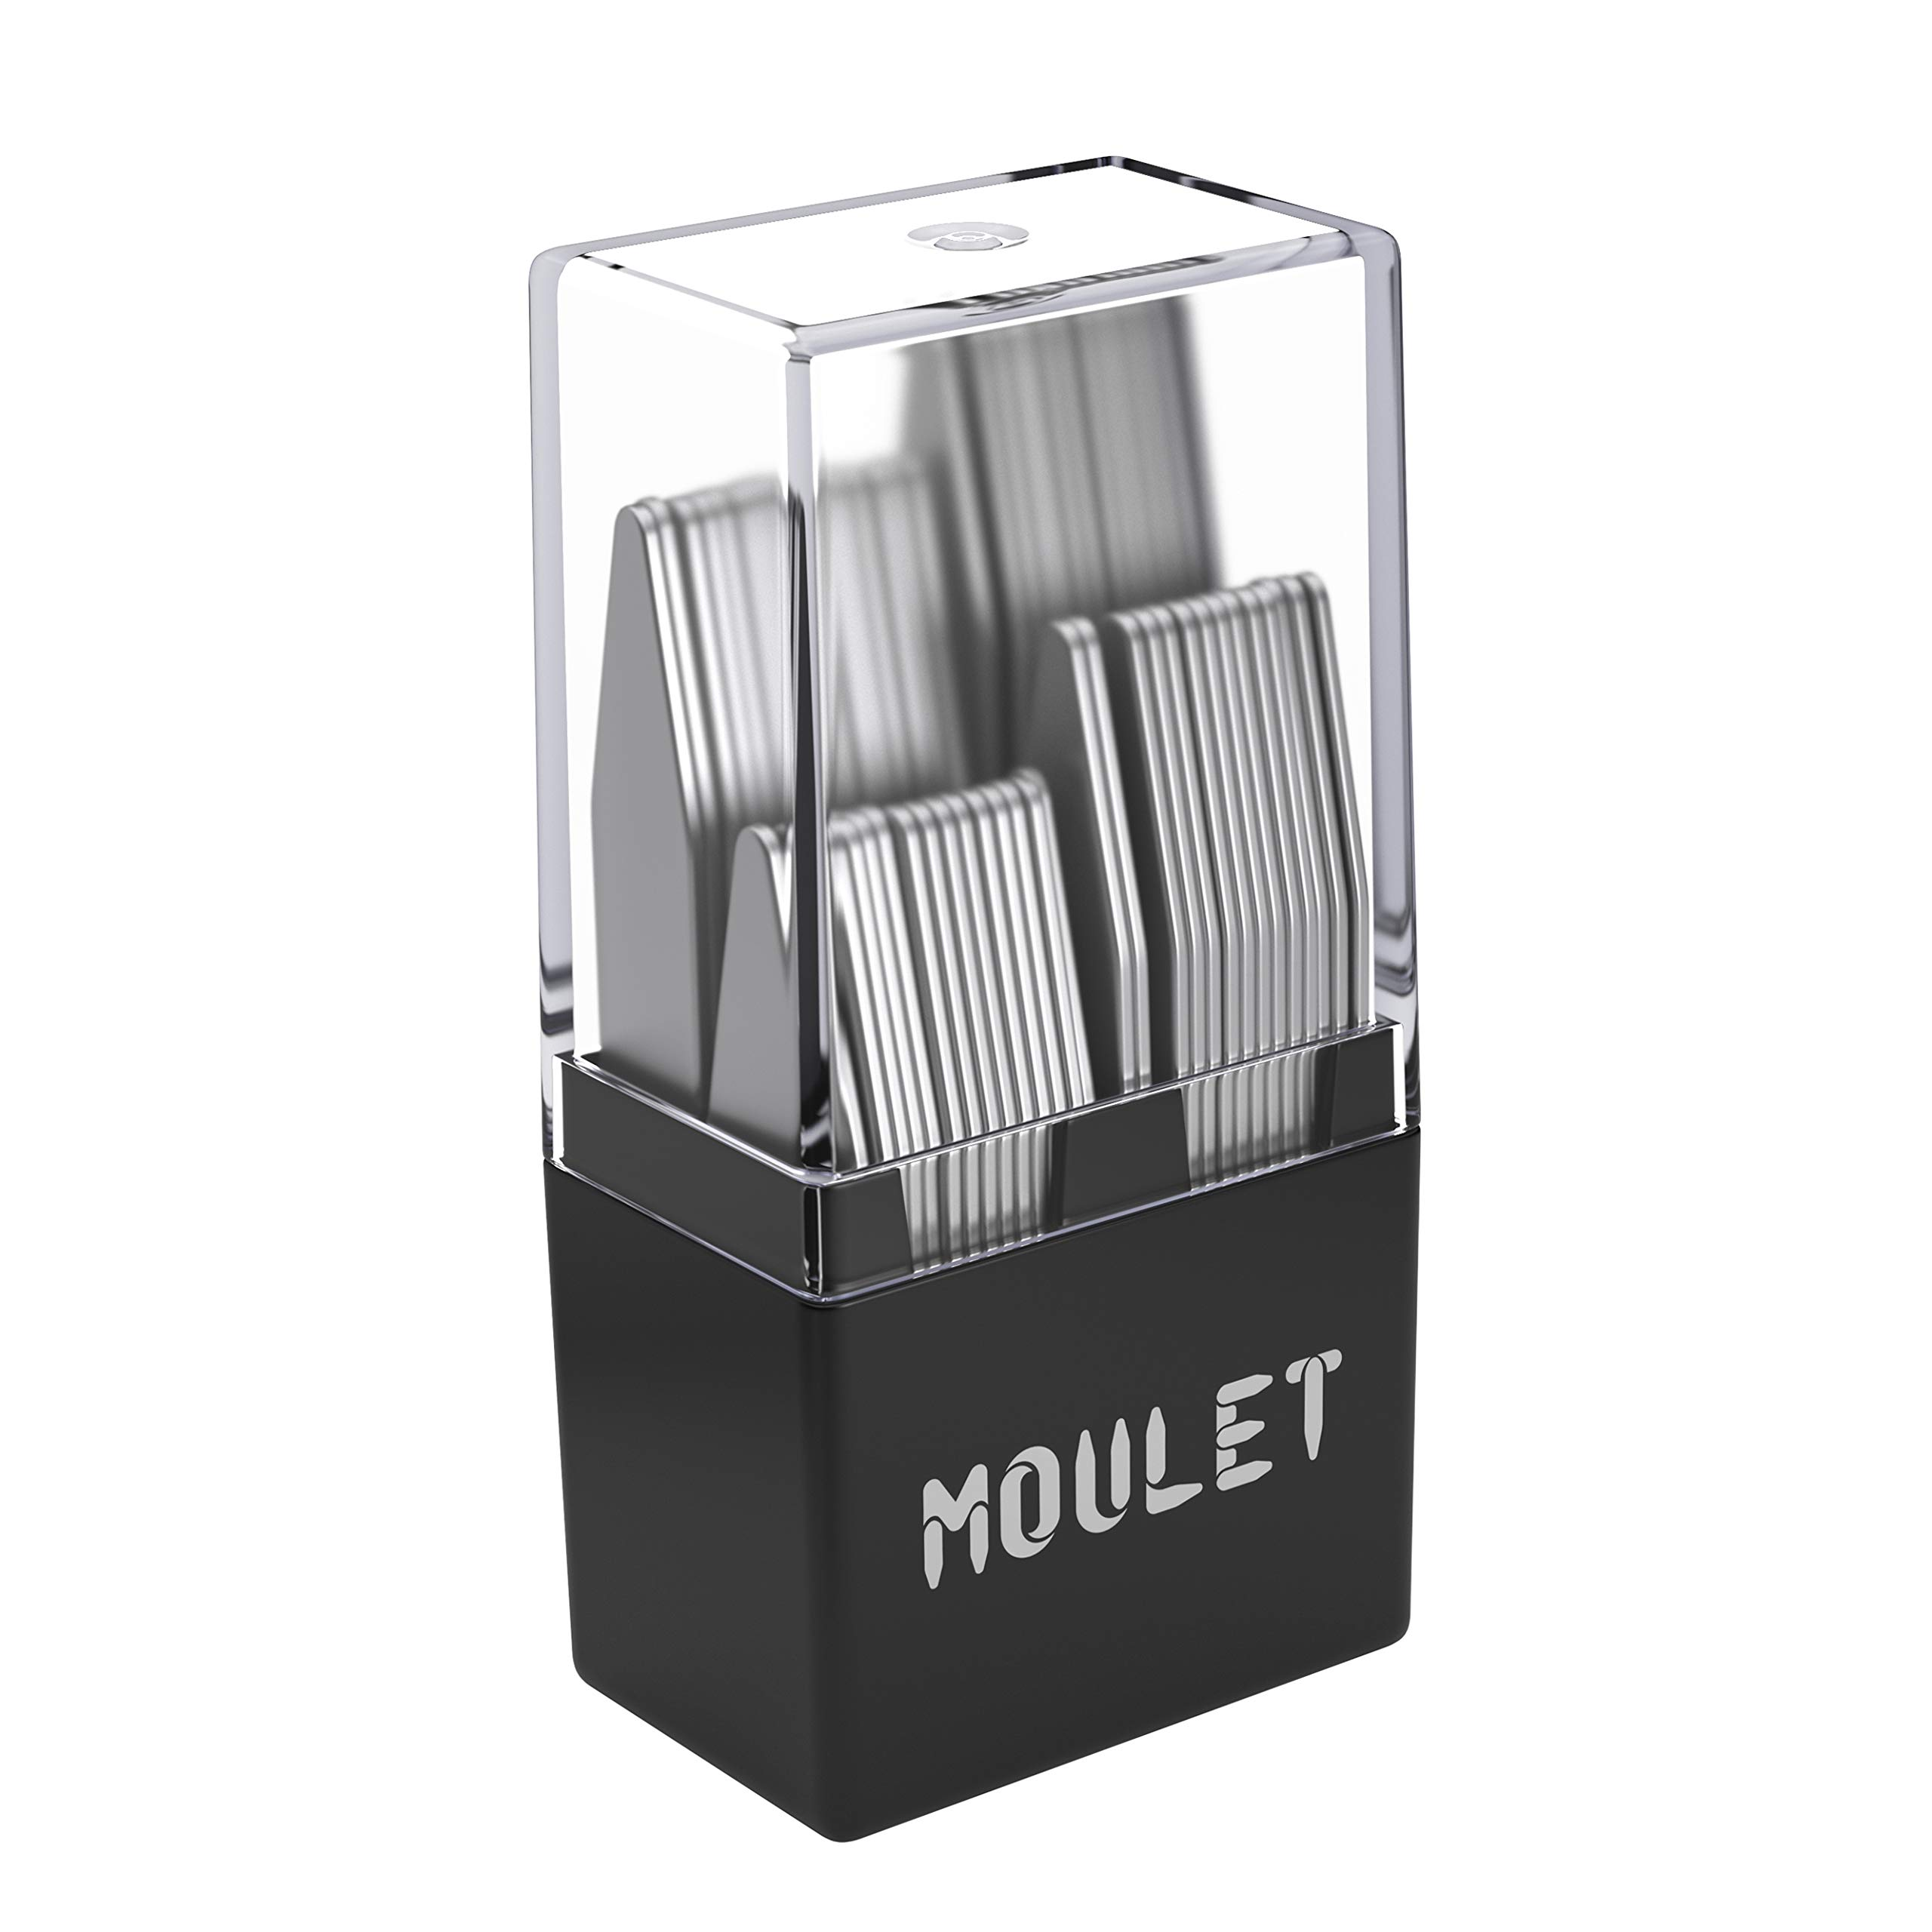 56 Metal Collar Stays in a Divided Box - 4 Sizes by Moulet by Moulet